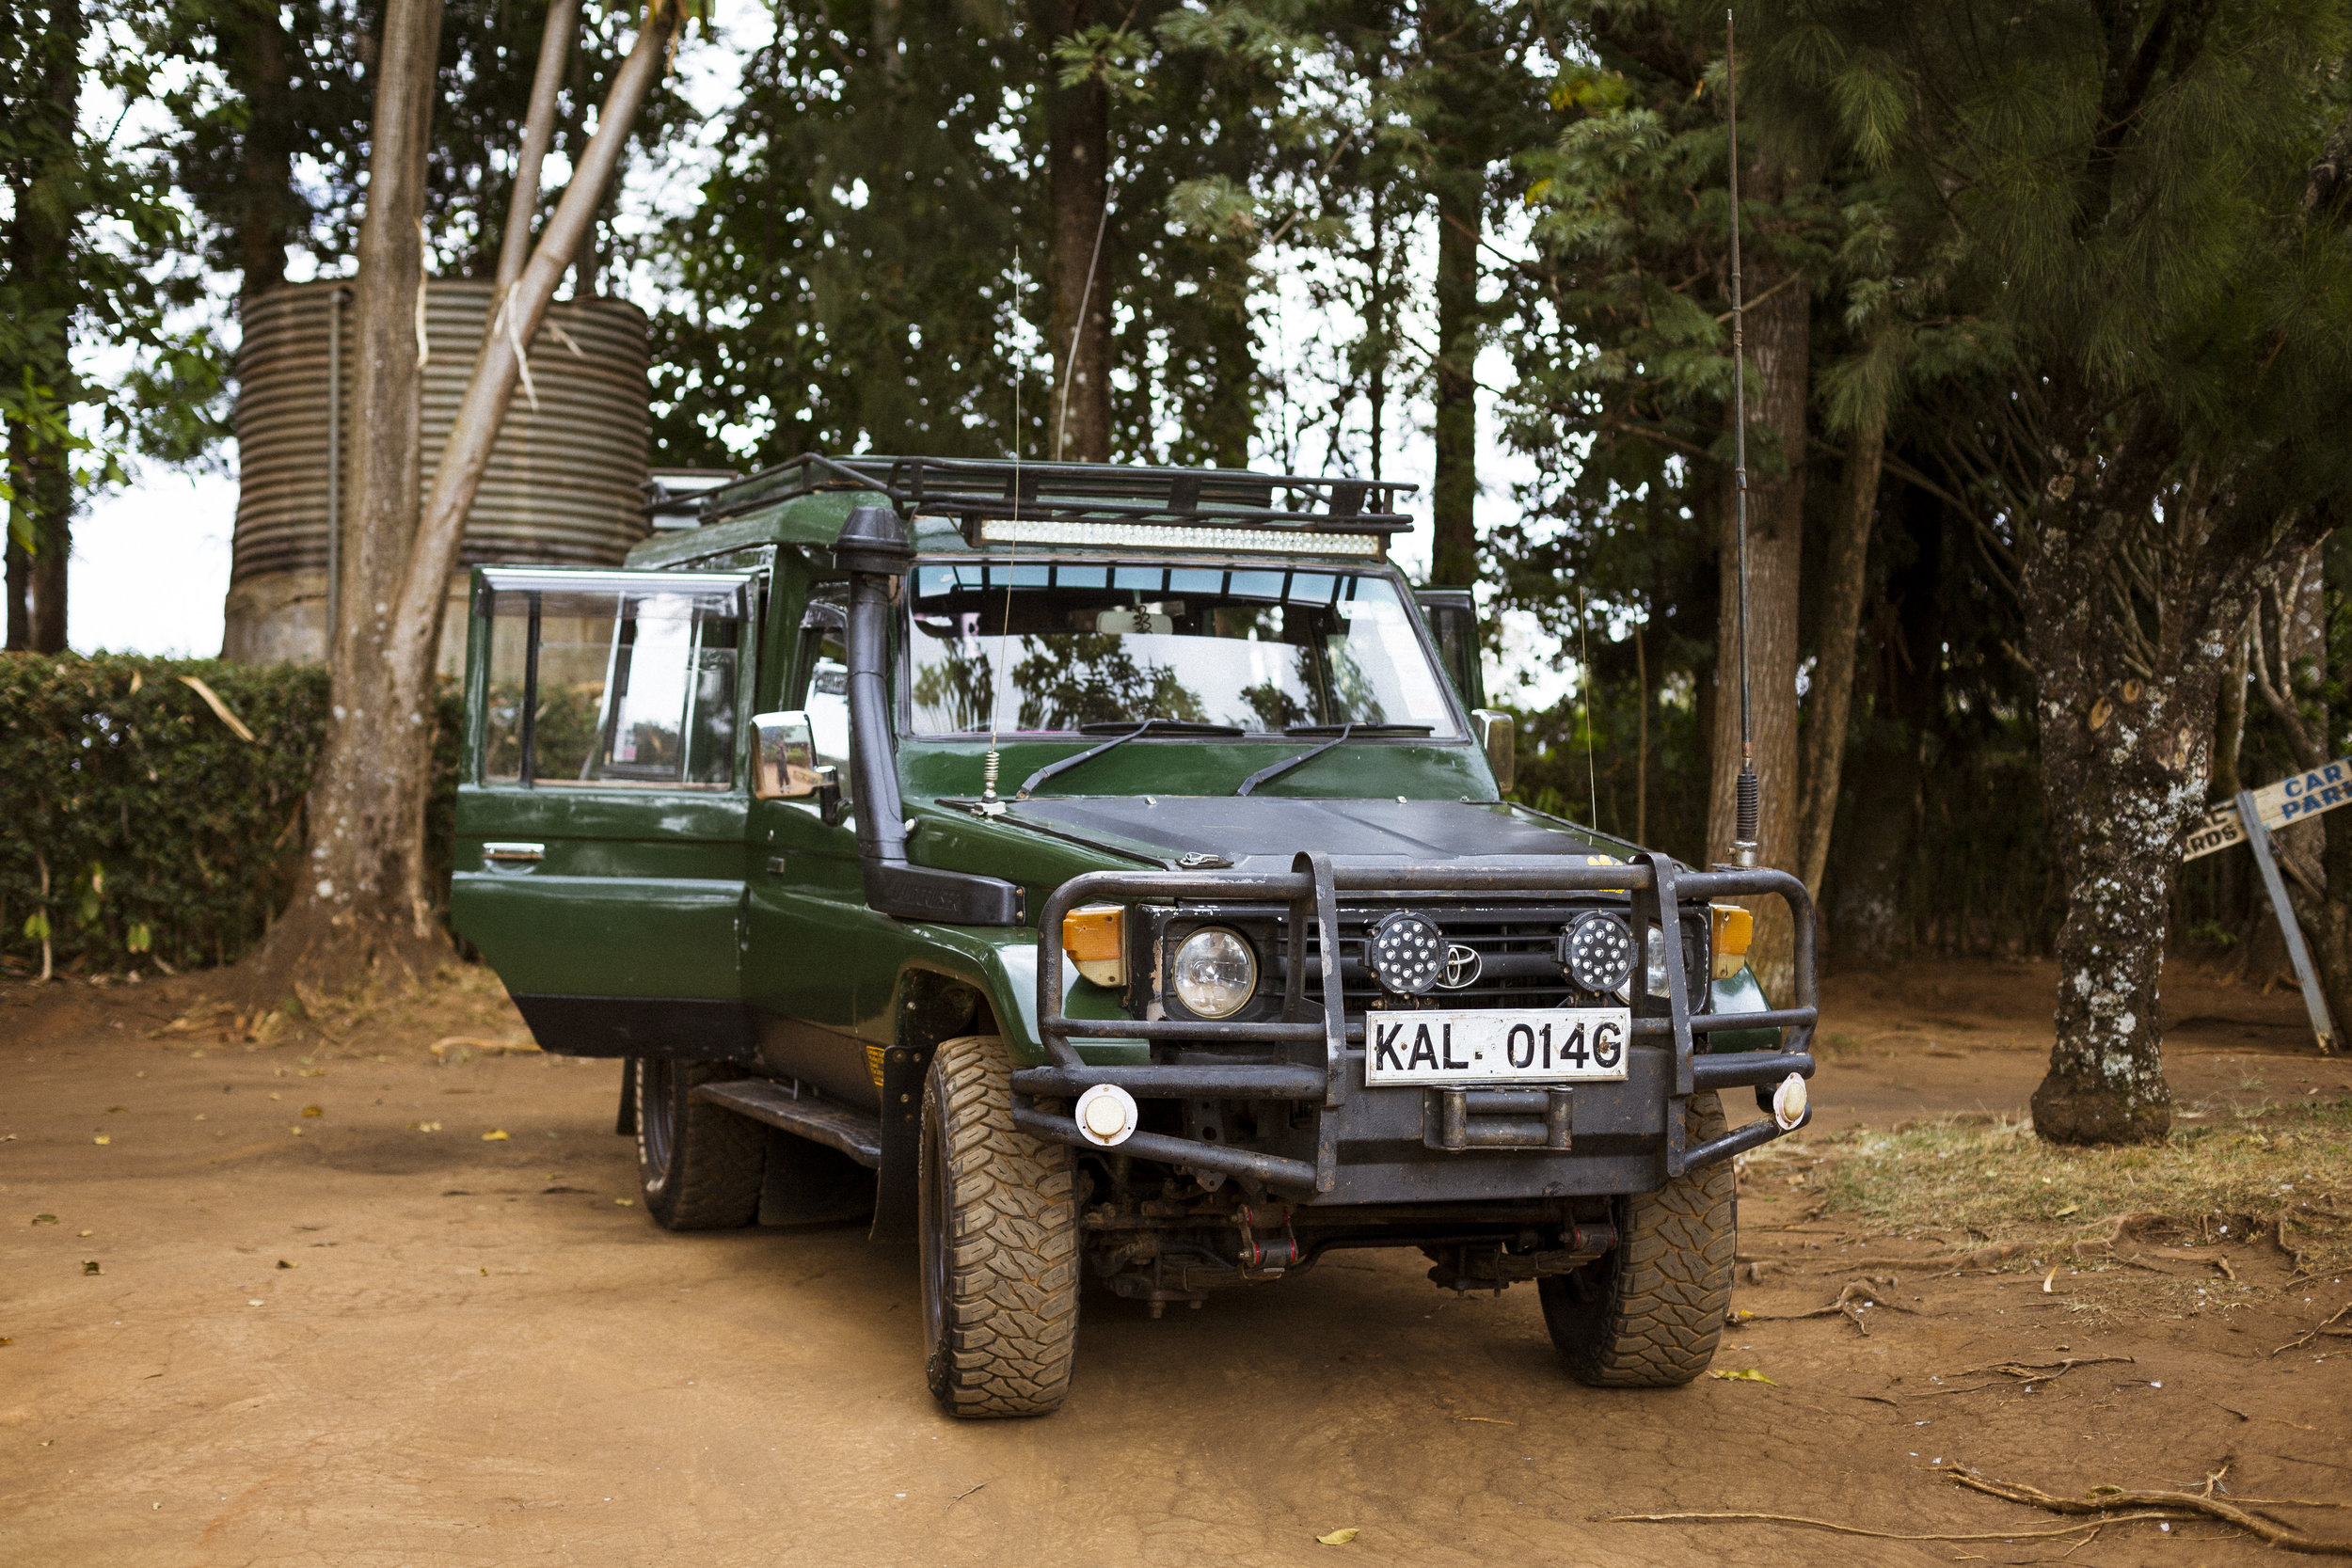 And this is his Toyota Land Cruiser that I fell in love with.